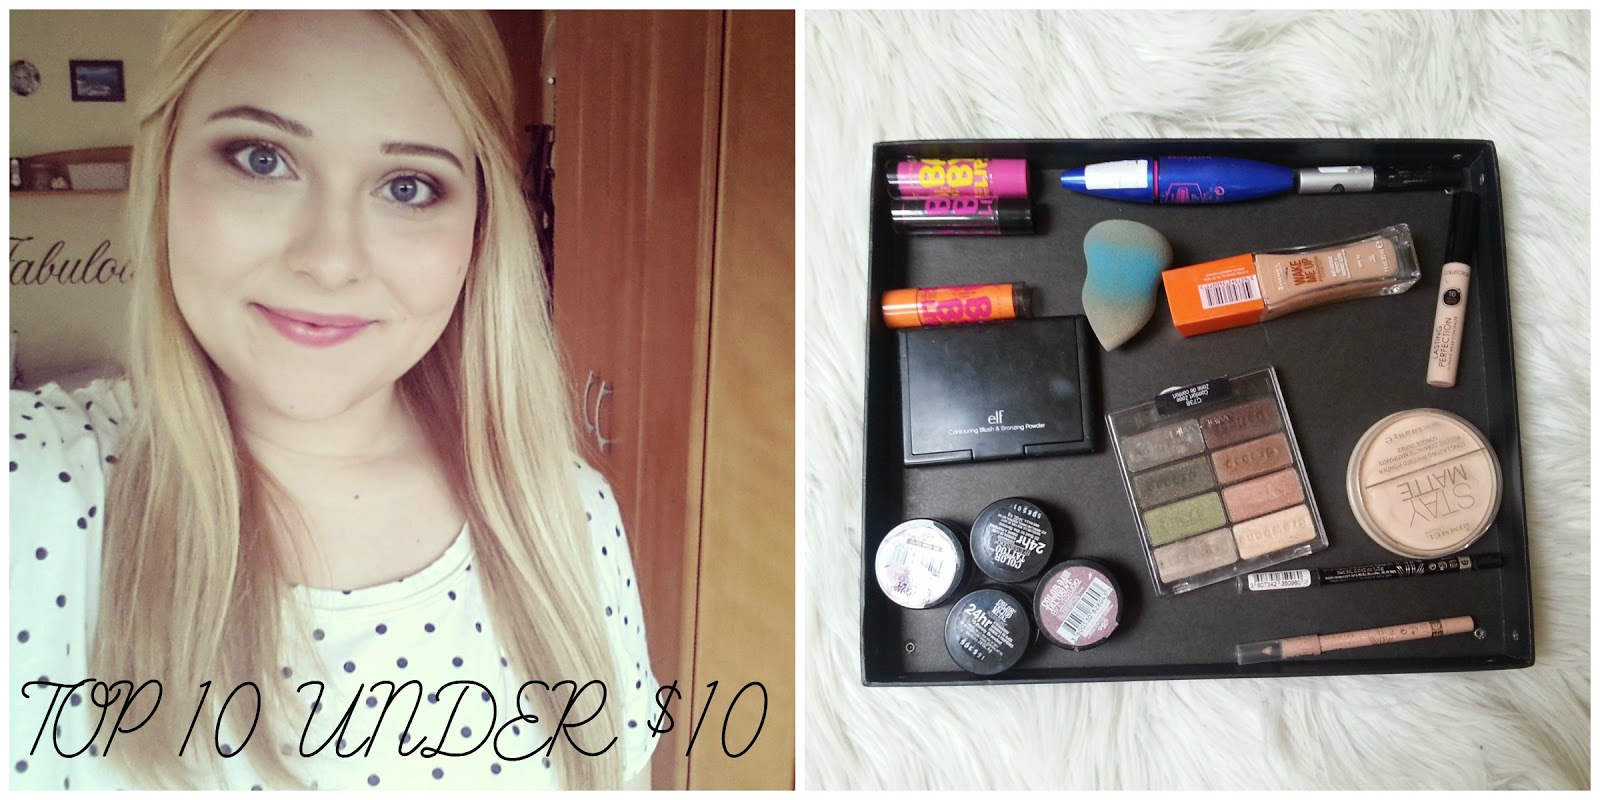 Top 10 Drugstore Make-up Products Under $10